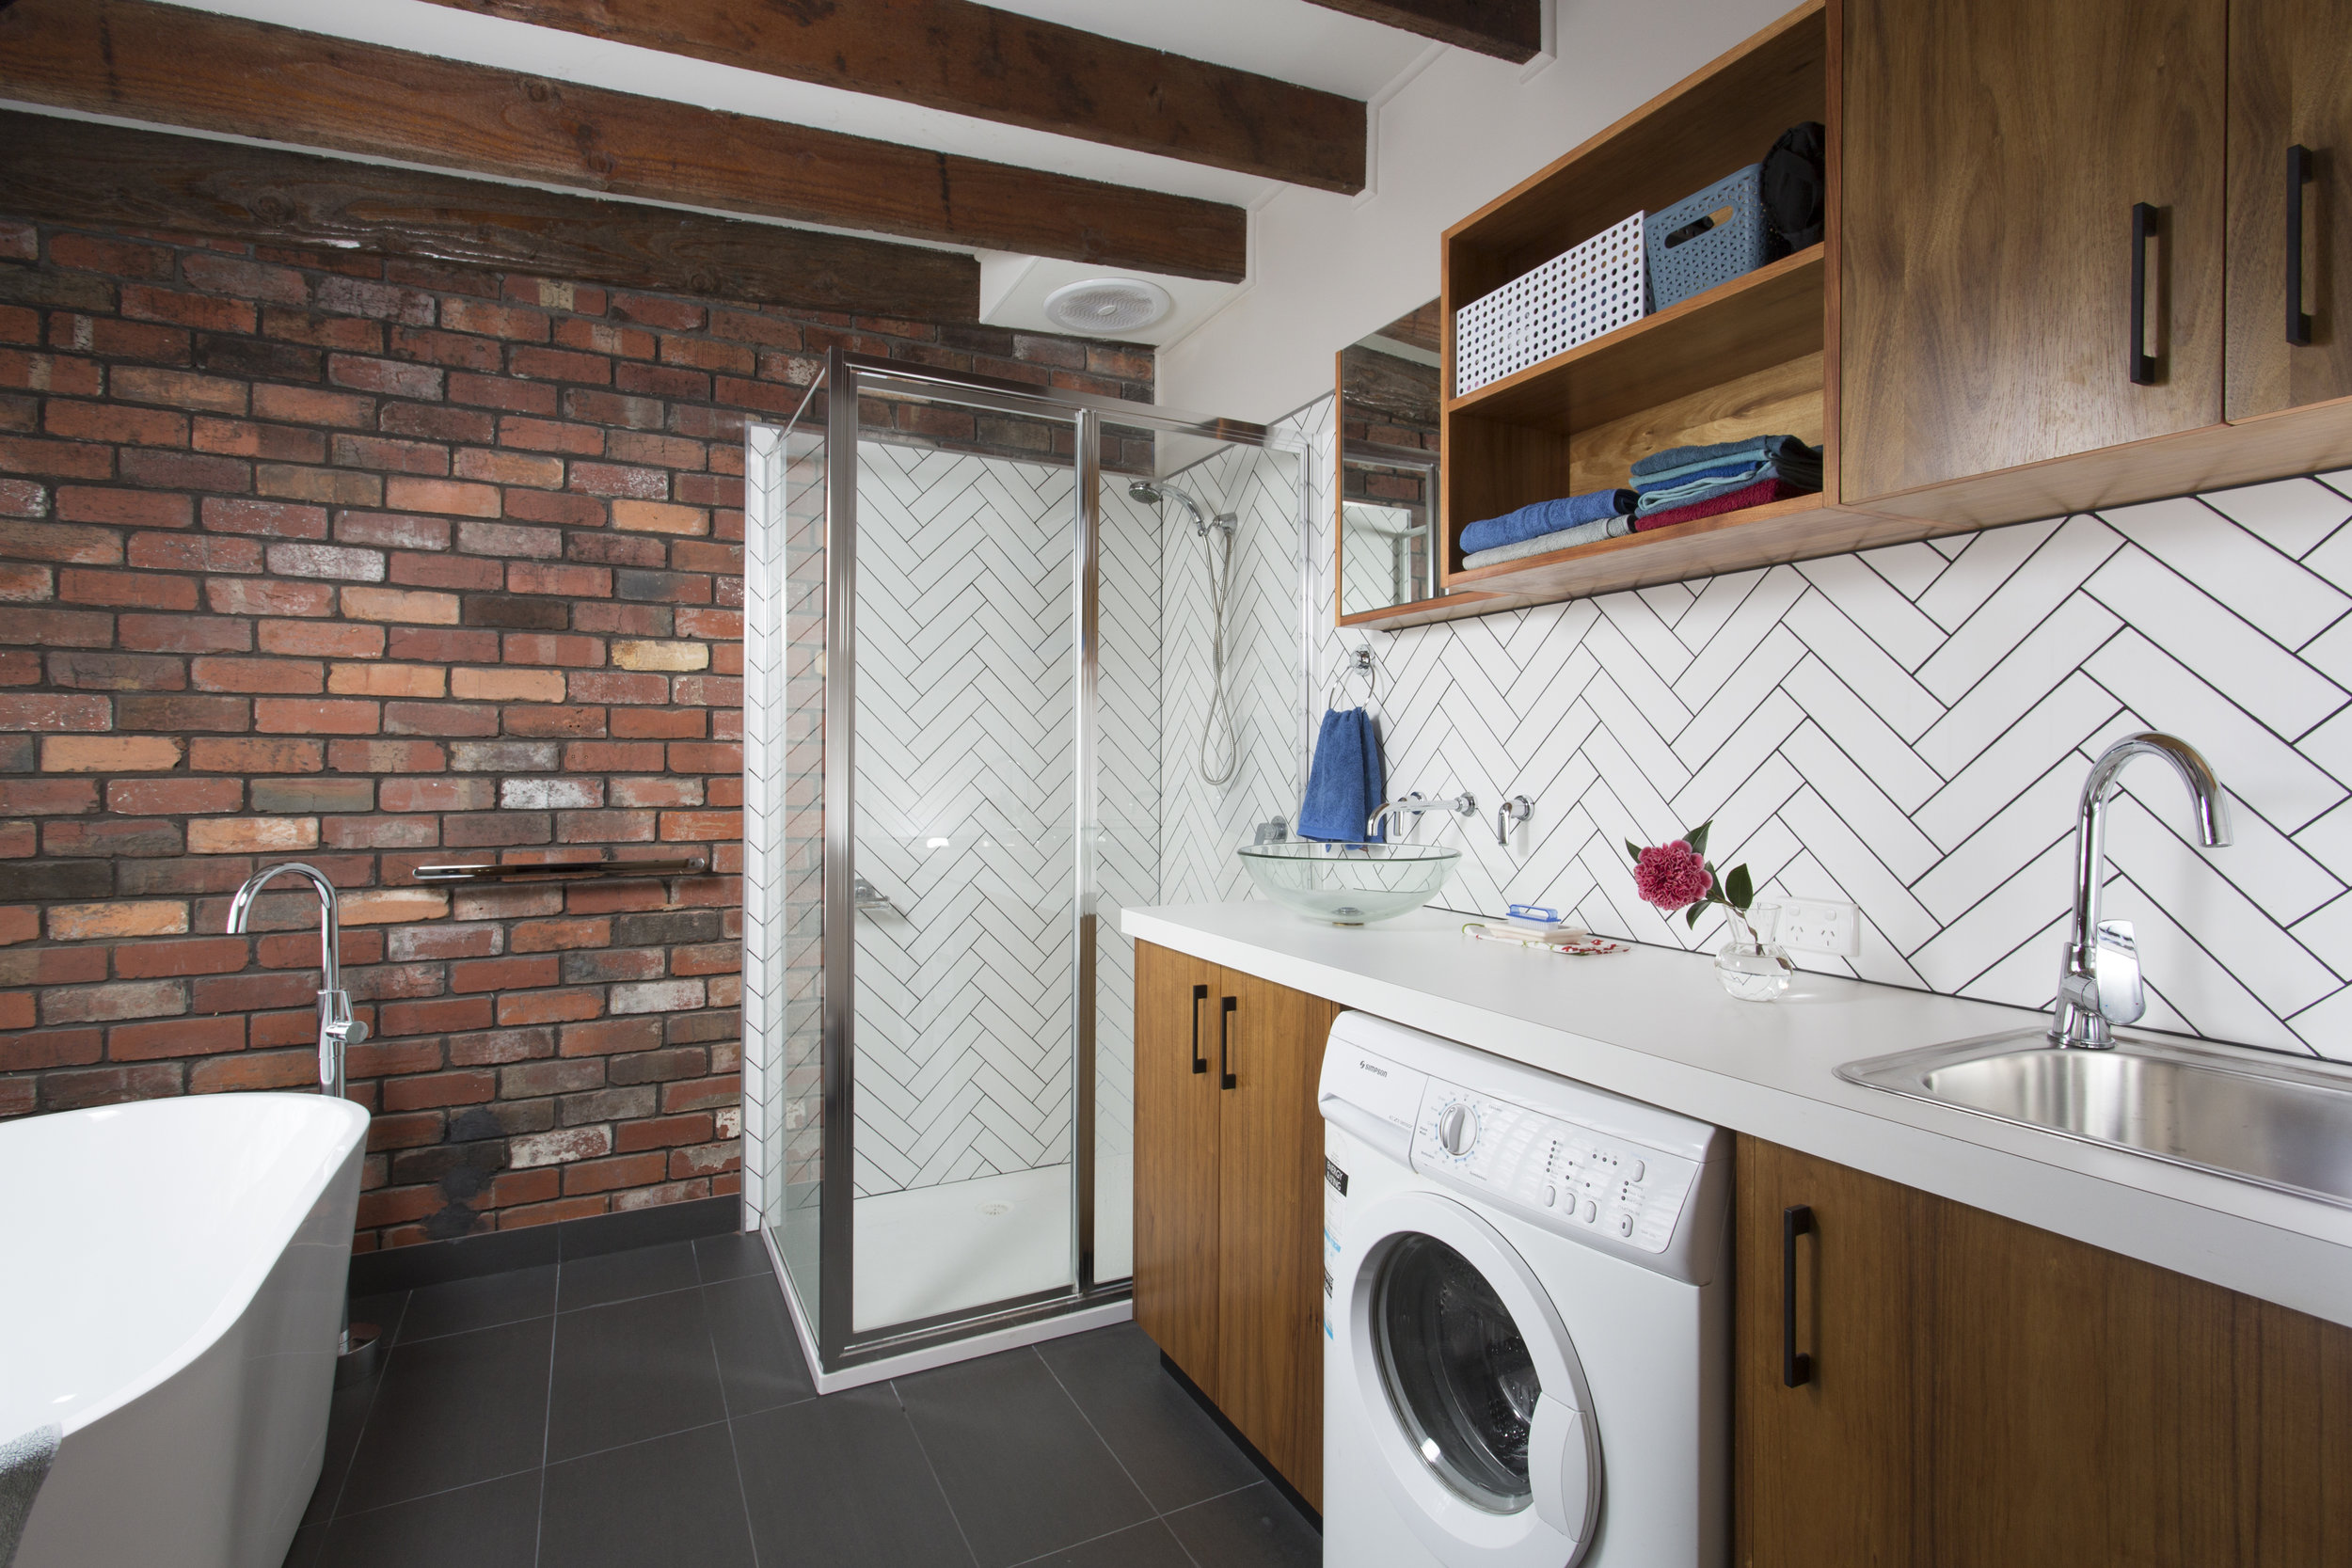 Laundry facilities built in to the large bathroom create a practical all in one wet area.